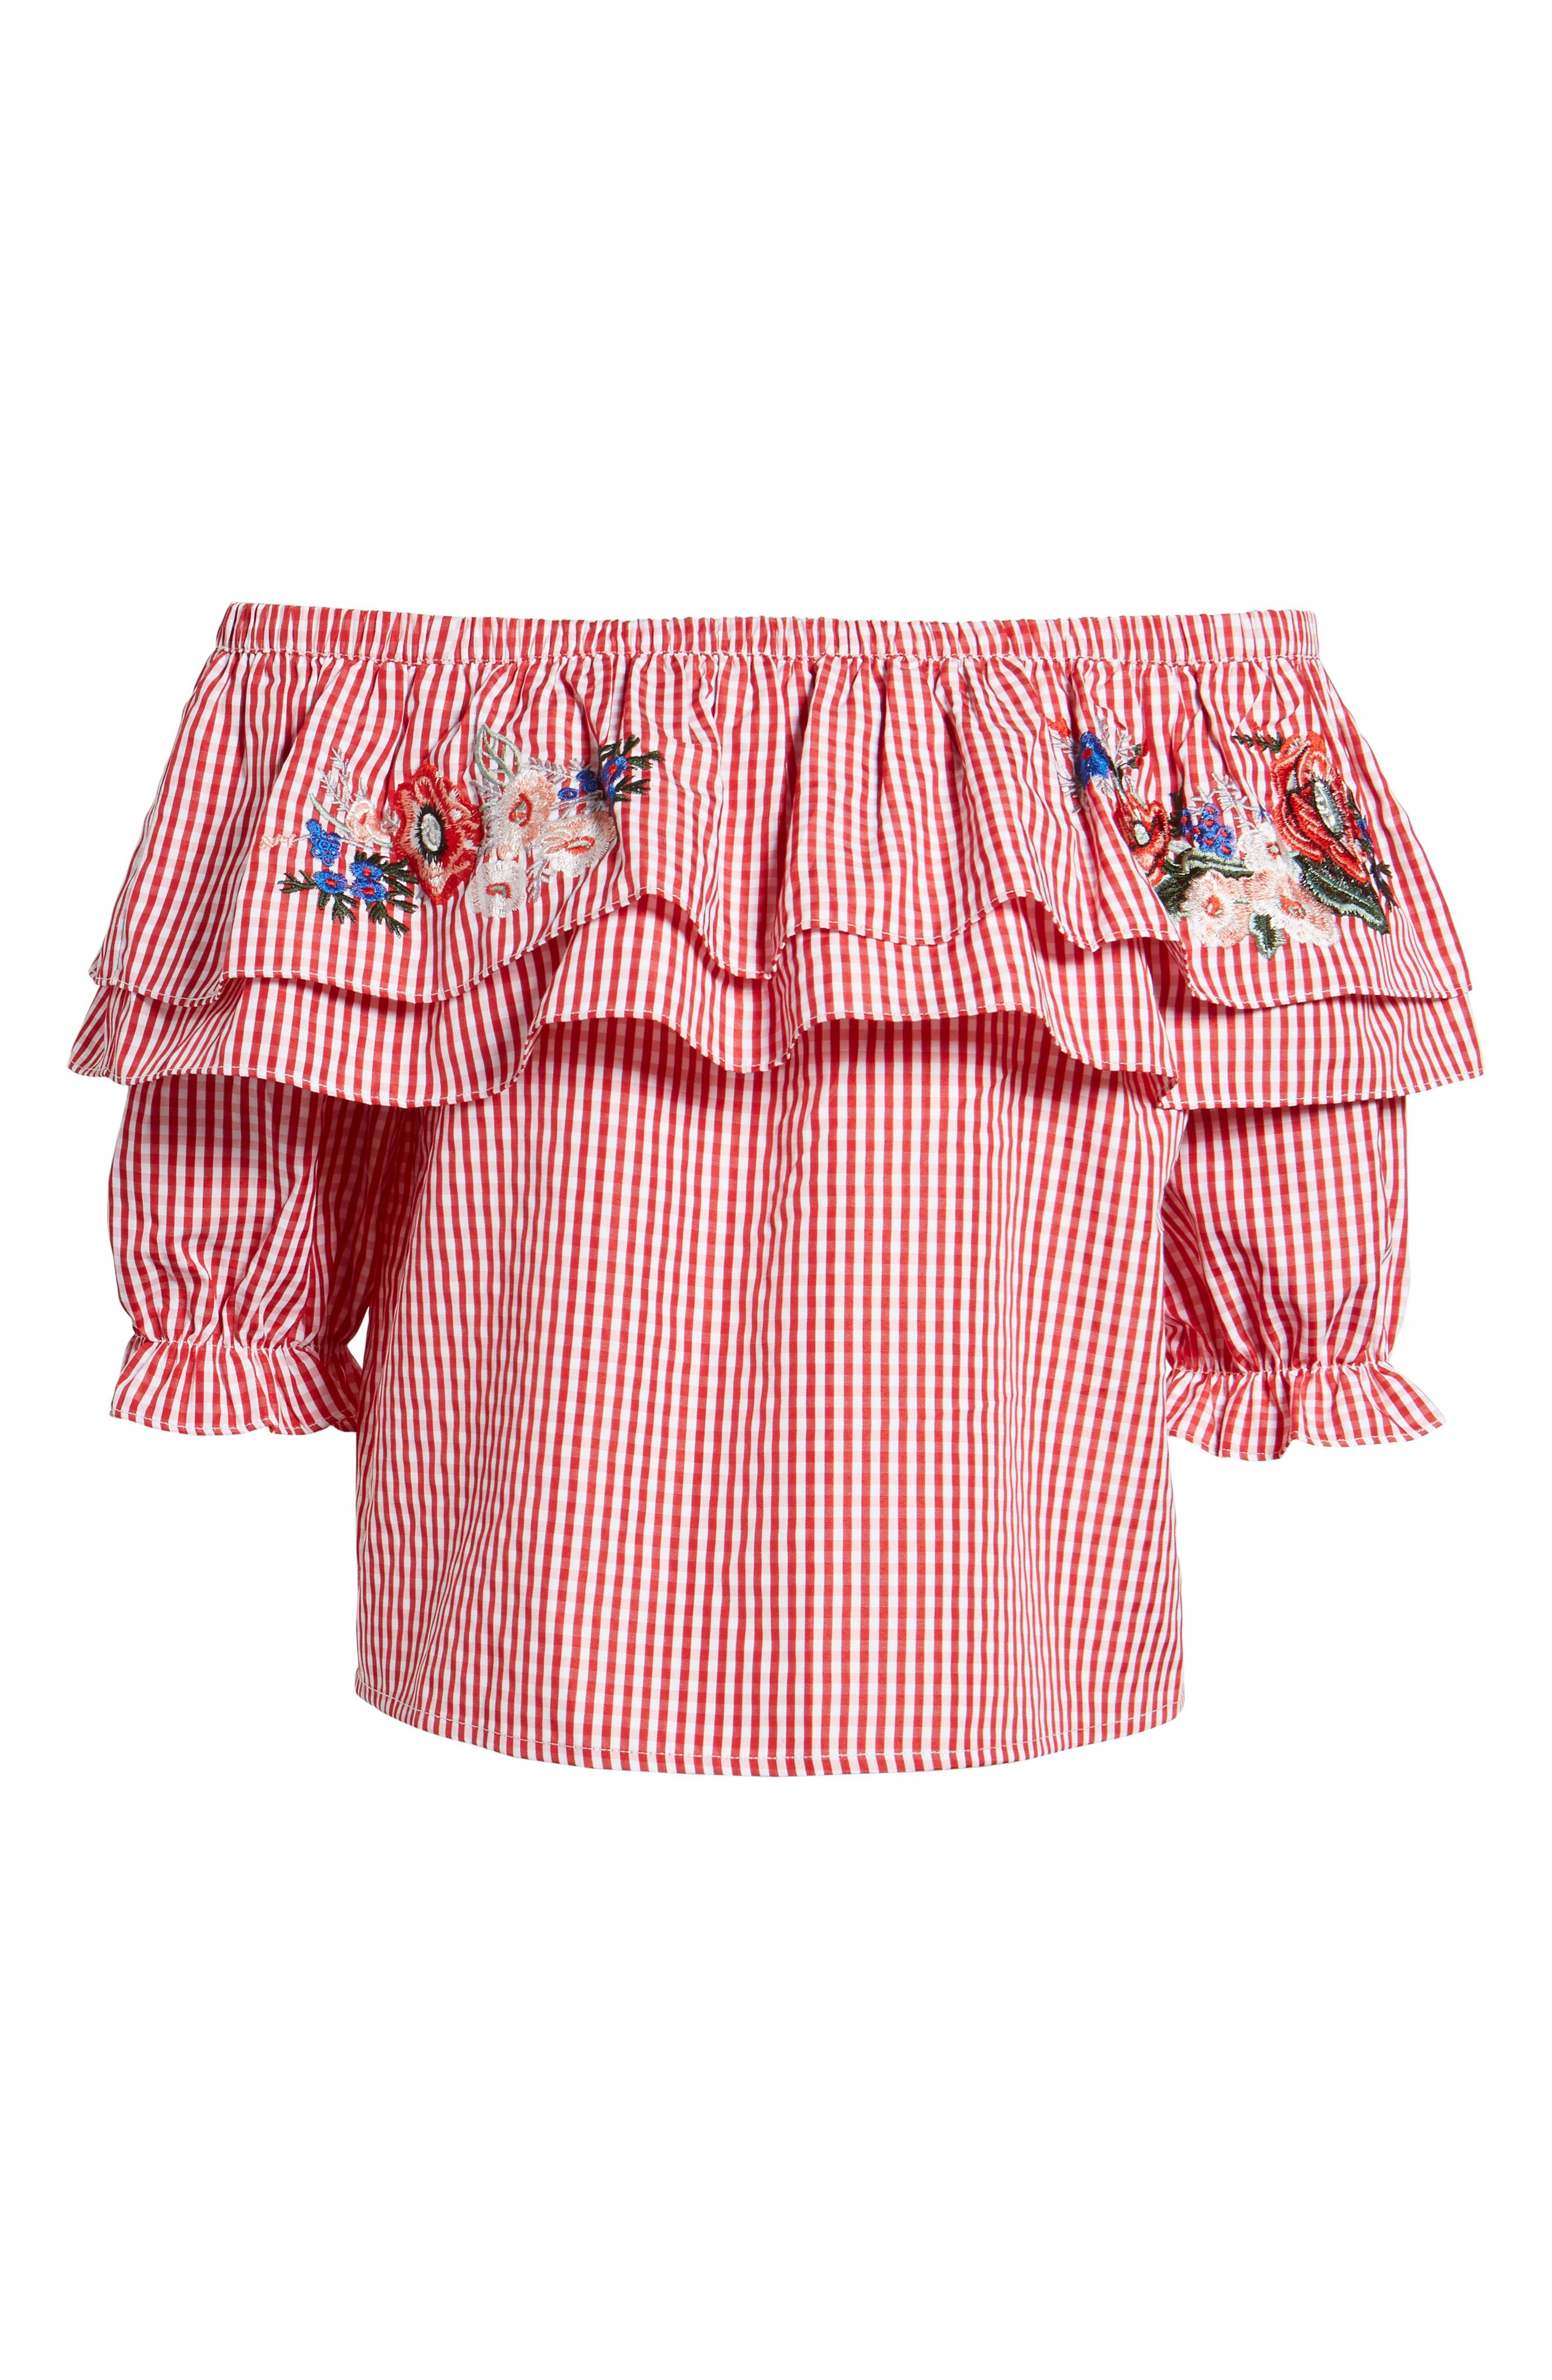 Embroidered Gingham Off the Shoulder Top,                             Alternate thumbnail 6, color,                             Red Gingham